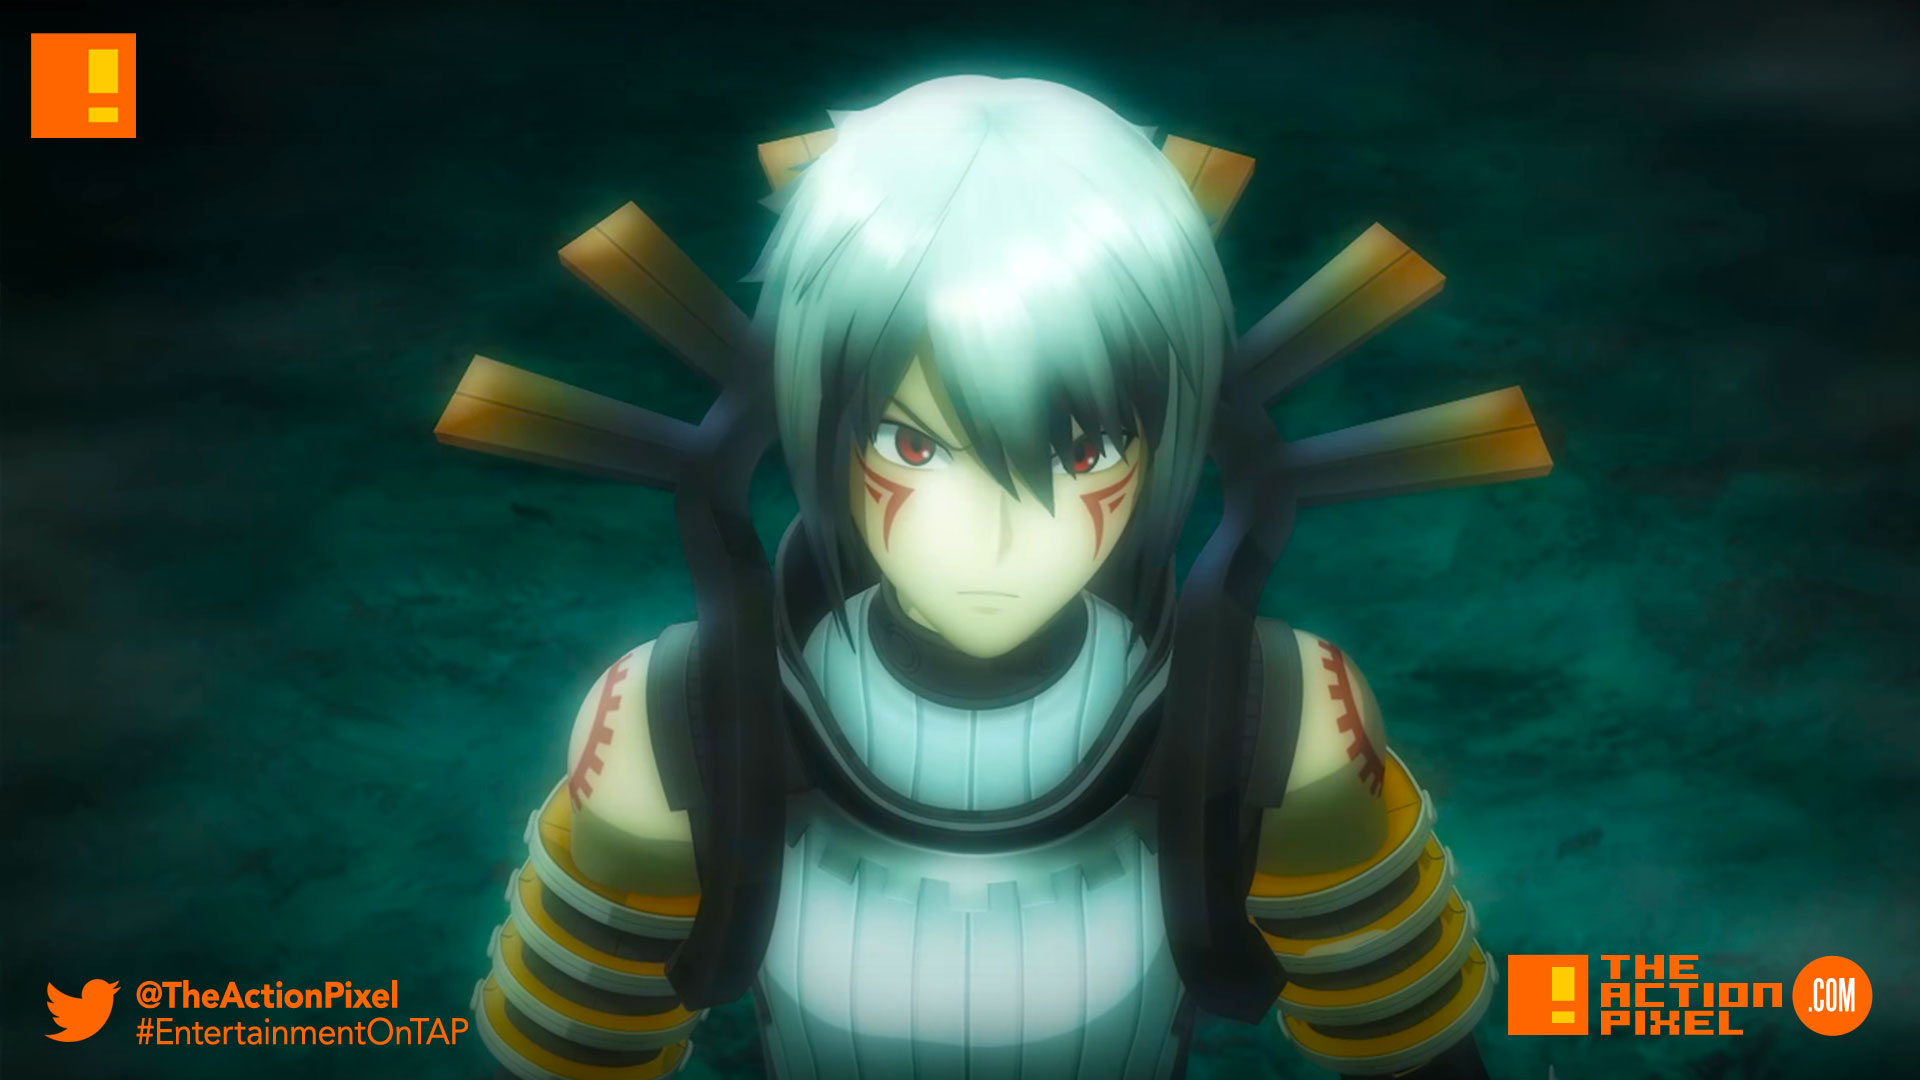 Bandai Namco Welcomes Us To The World Of Hack With New Trailer